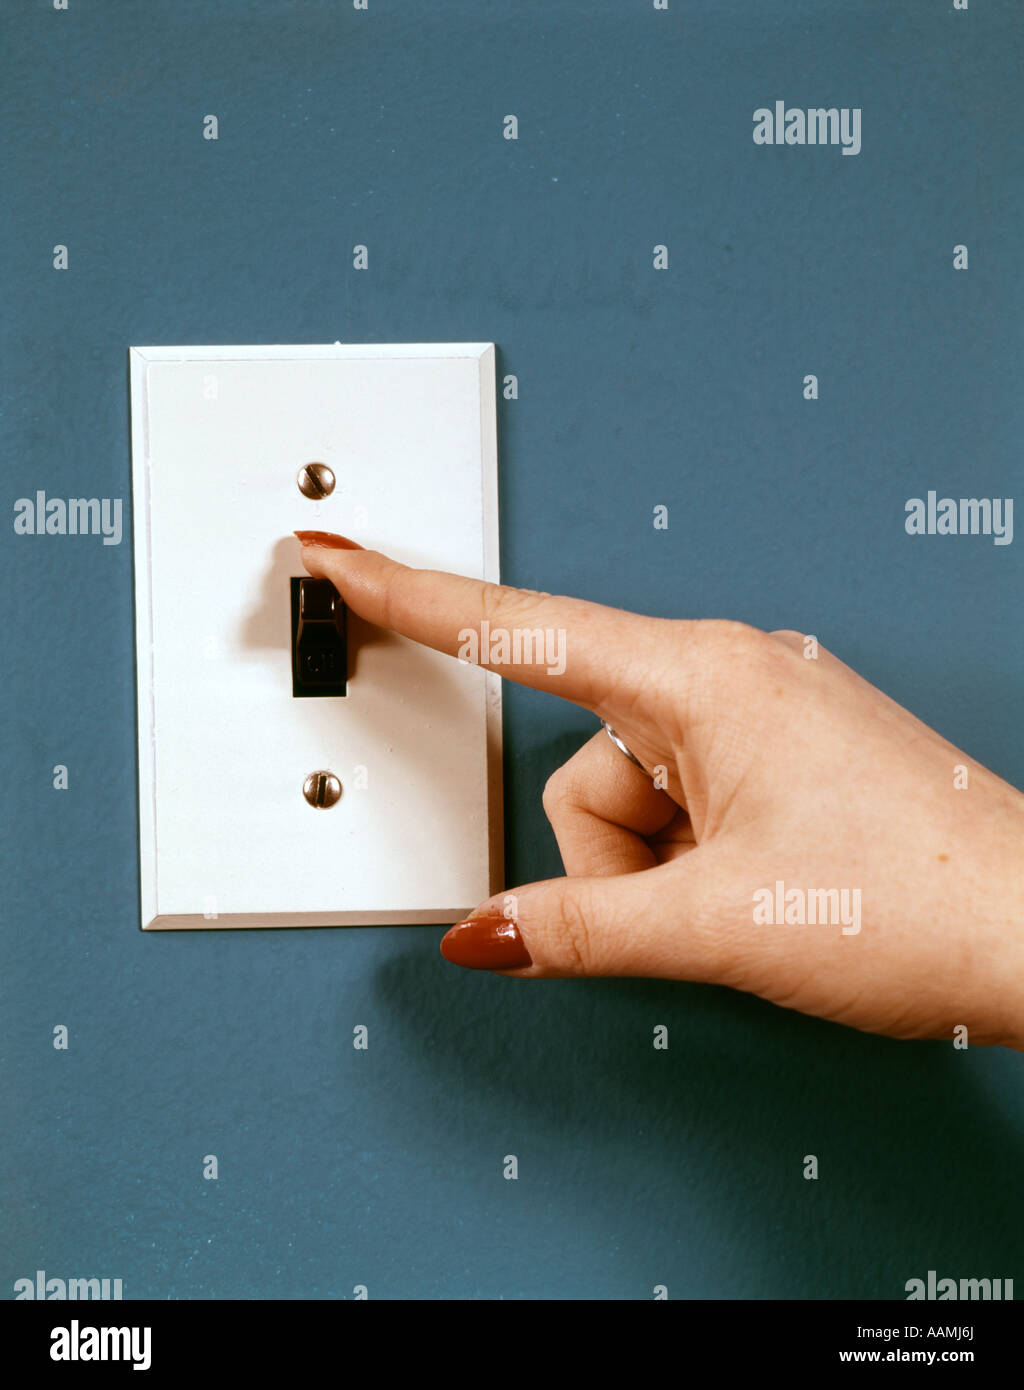 LIGHT SWITCH HAND ON OFF ELECTRICITY 1970 1970s RETRO - Stock Image